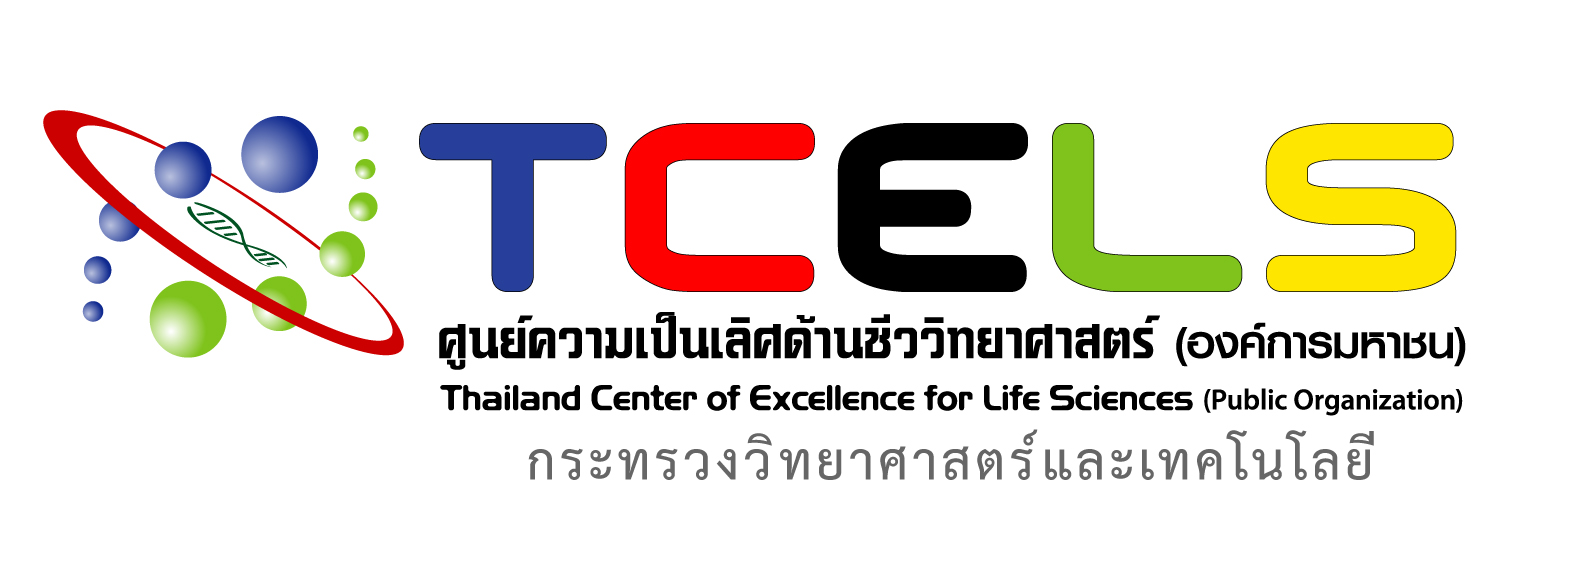 TCELS - Thailand Center of Excellence for Life Sciences